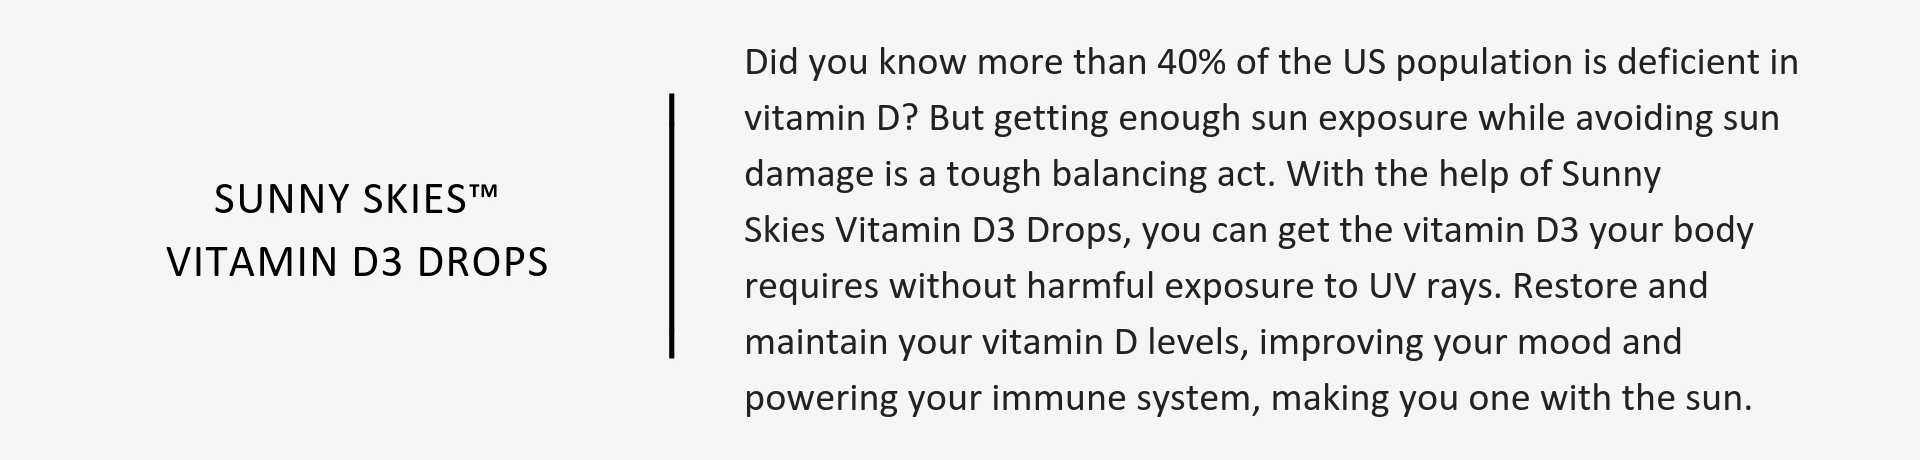 Sunny Skies™ Vitamin D3 Drops help restore and maintain your vitamin D levels, improving your mood and powering your immune system, making you one with the sun.